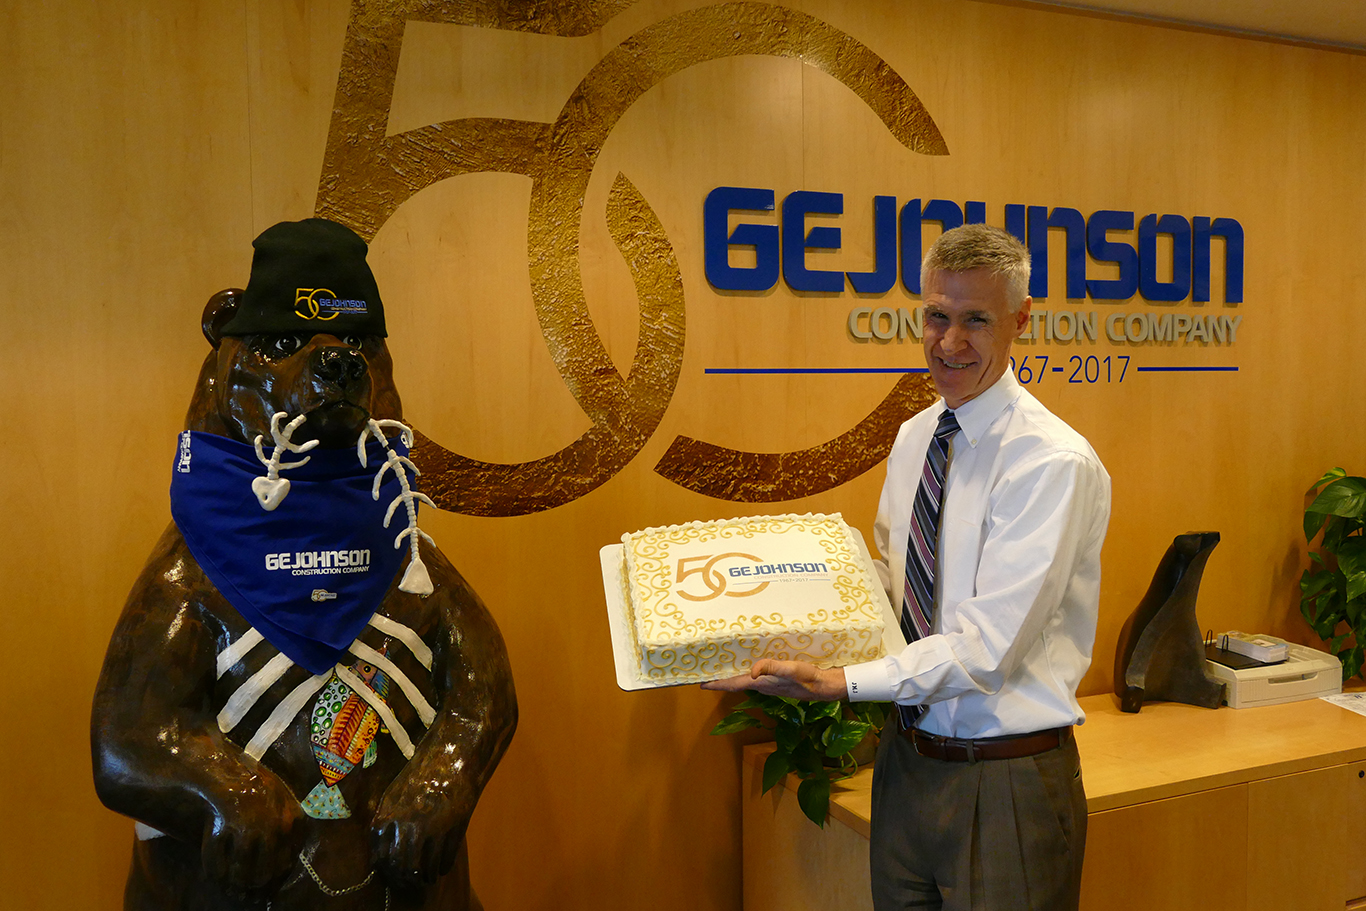 GE Johnson Celebrates 50th Anniversary_Colorado Springs CO